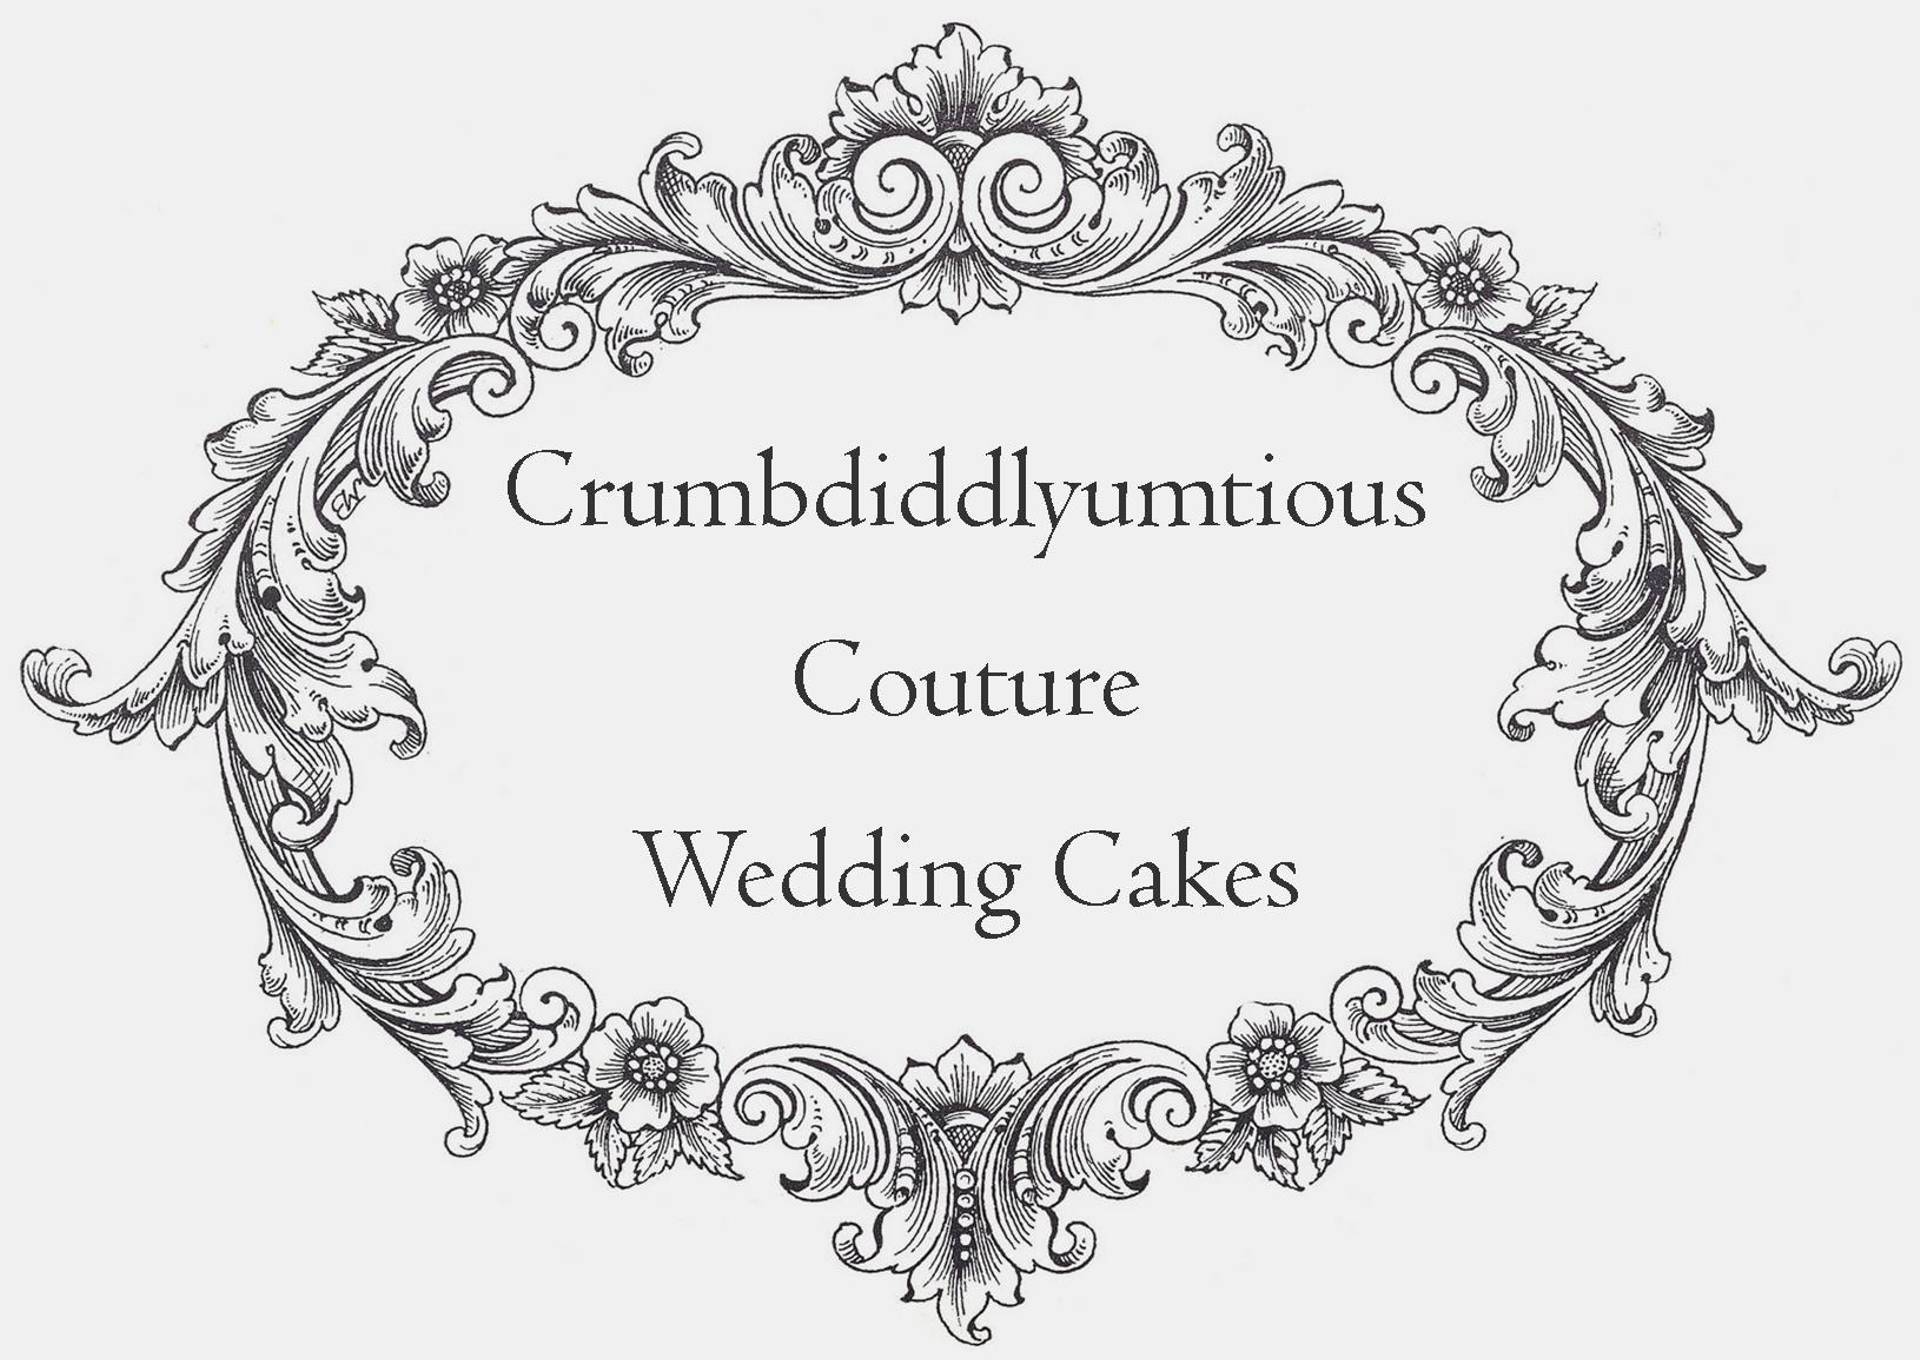 Crumbdiddlyumtious Couture Wedding Cakes